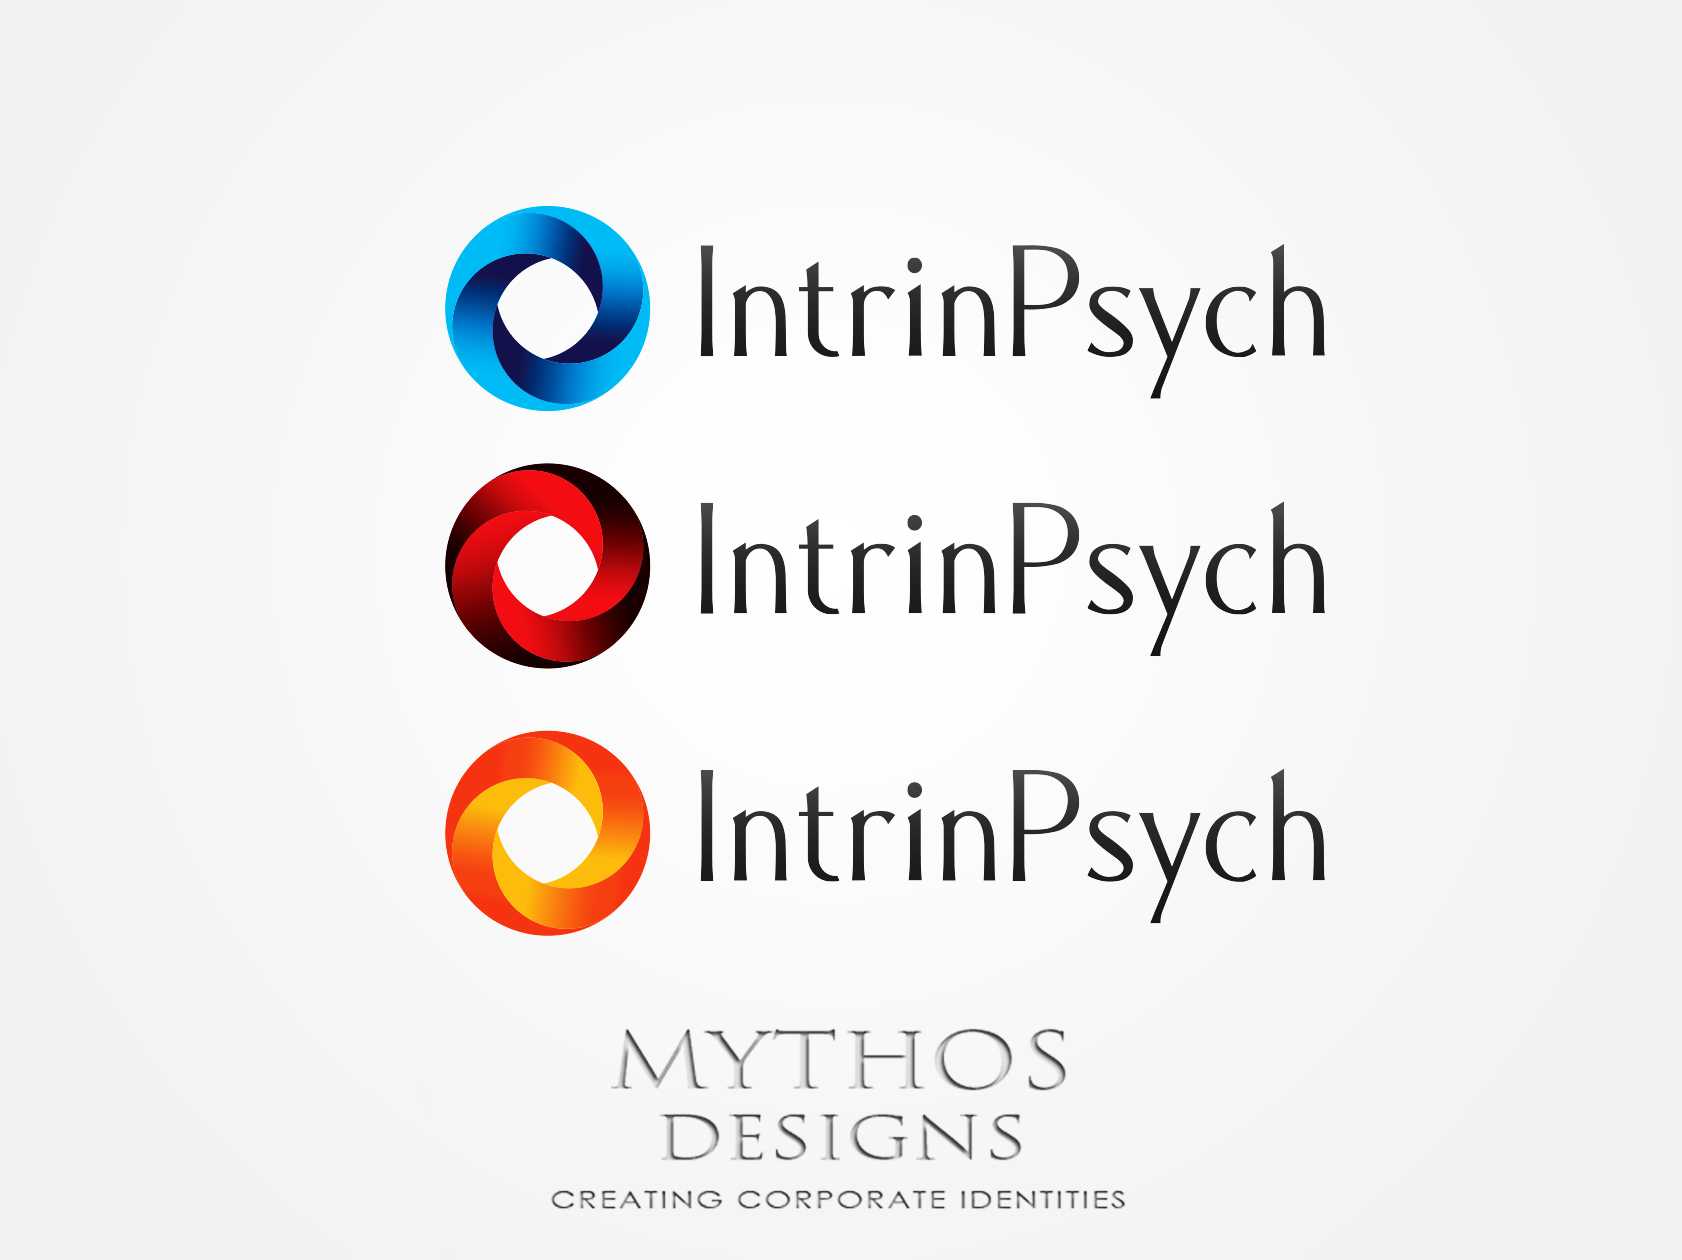 Logo Design by Mythos Designs - Entry No. 29 in the Logo Design Contest New Logo Design for IntrinPsych.